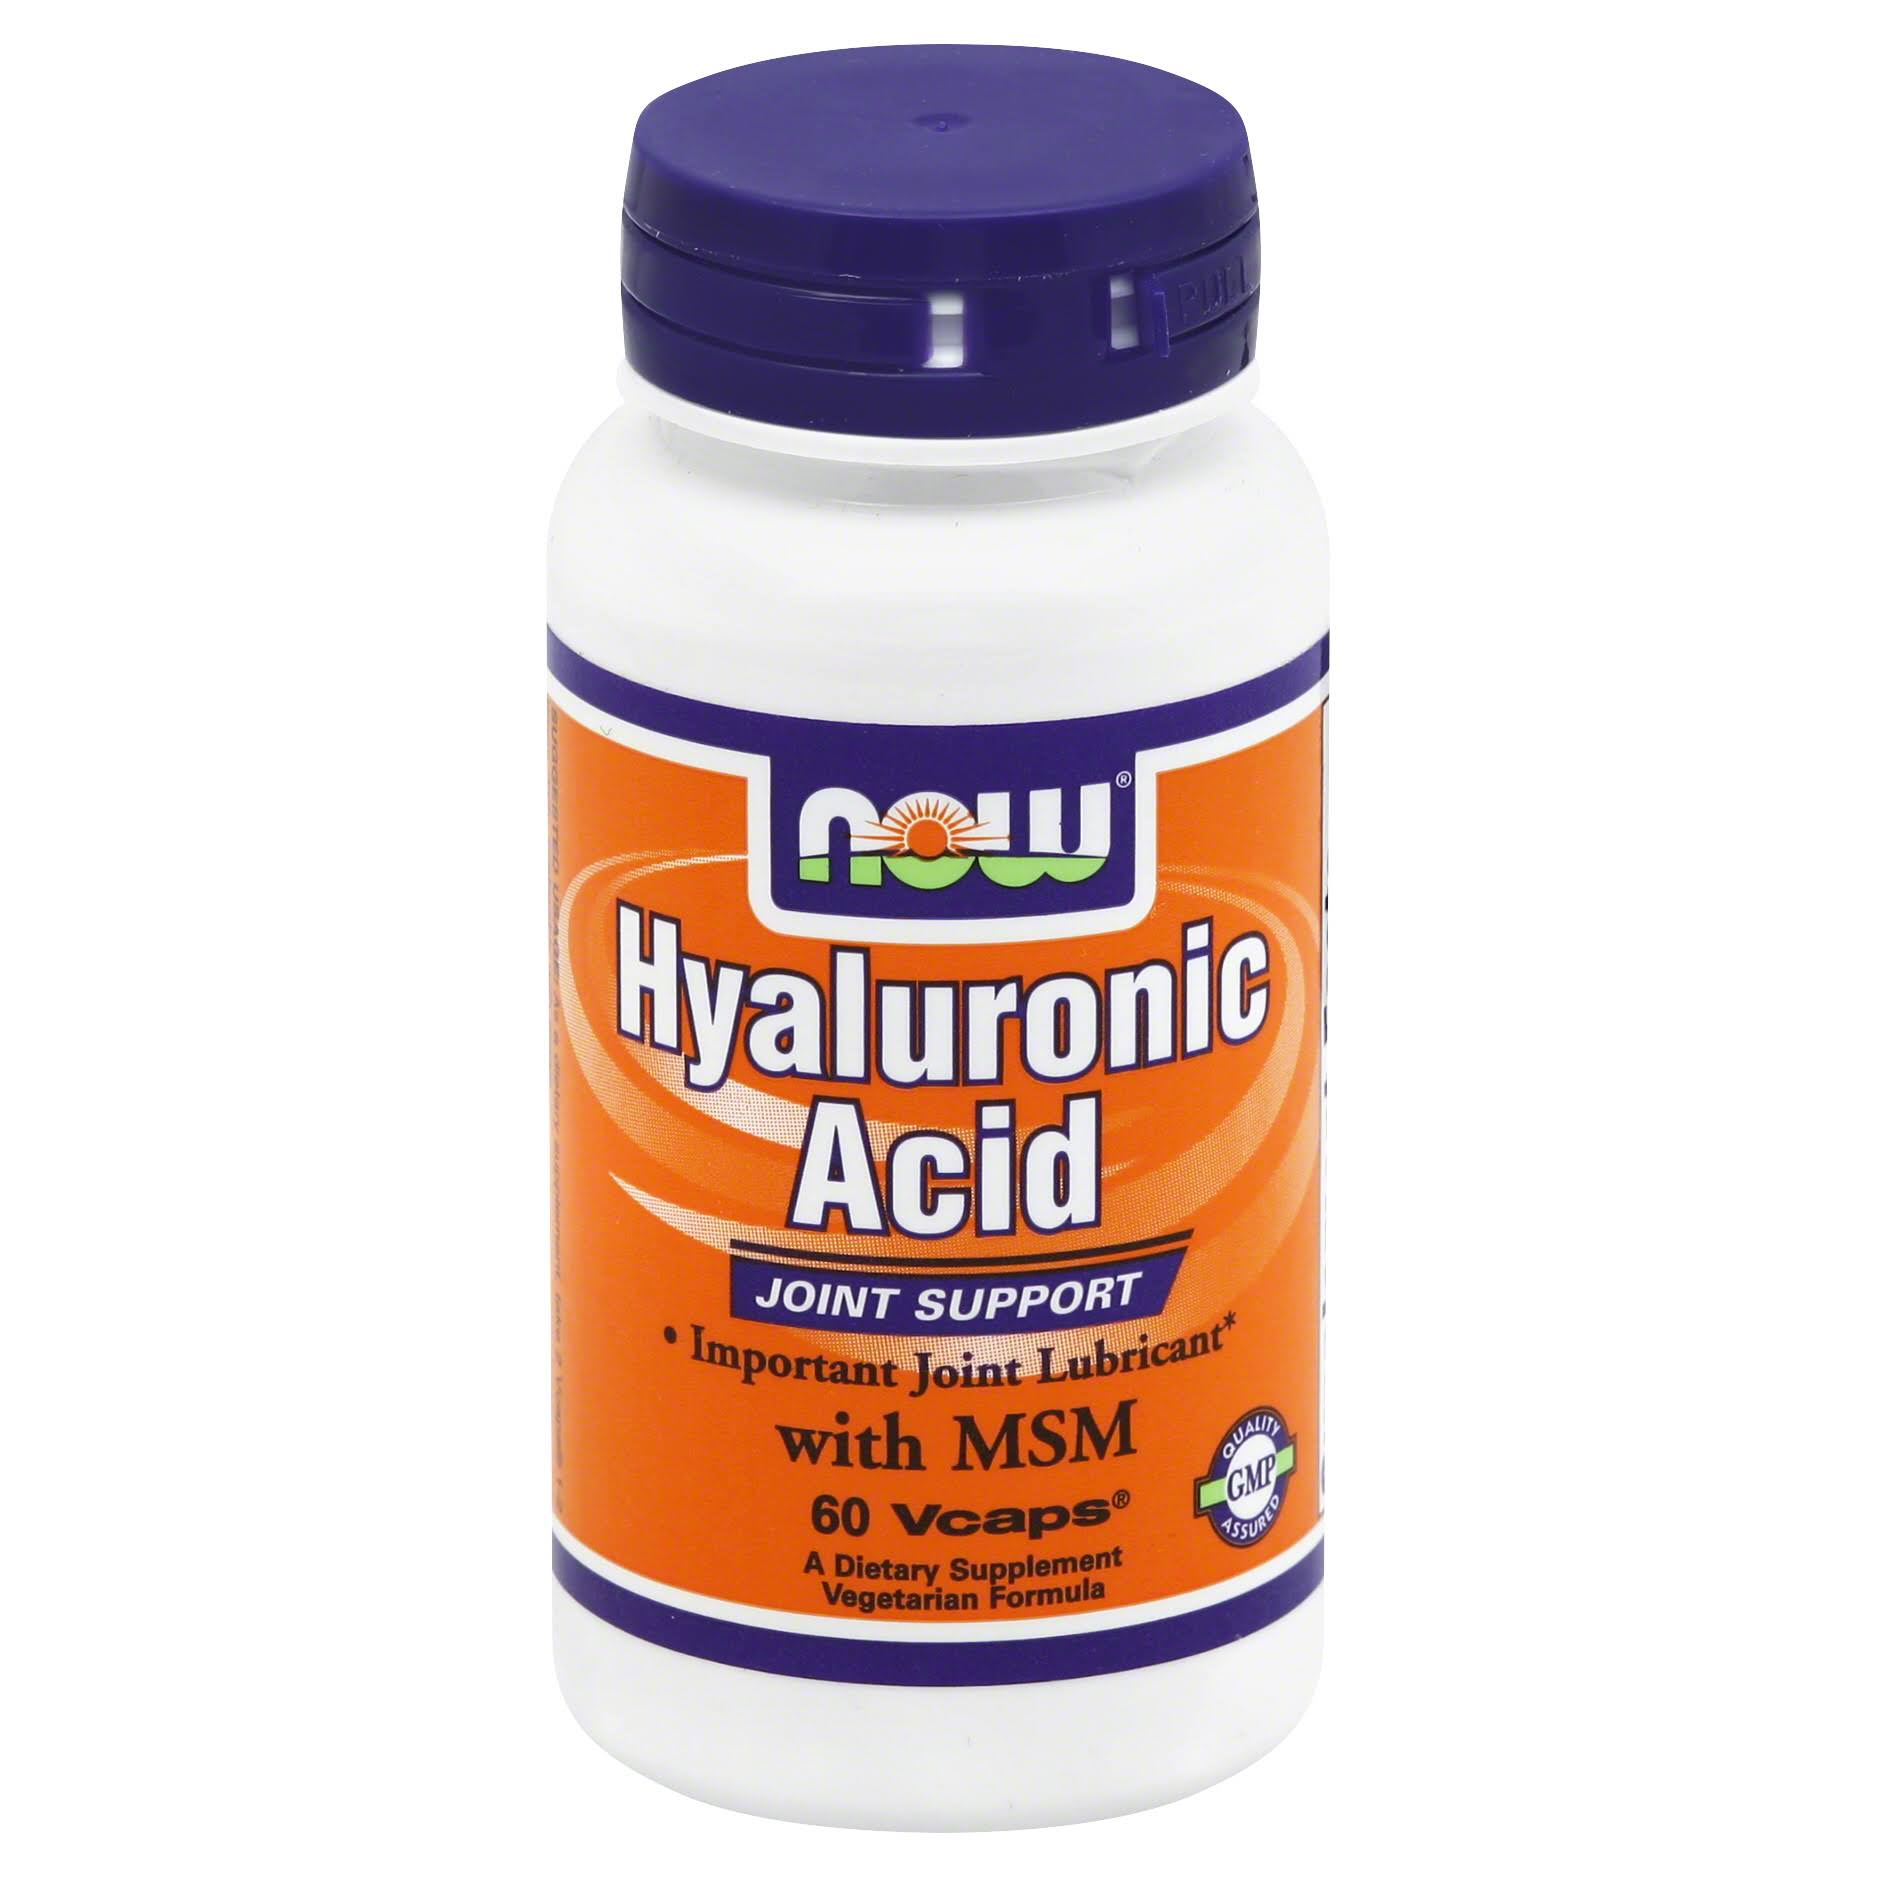 Now Hyaluronic Acid, with MSM, Vegetarian Formula, Vcaps - 60 vcaps